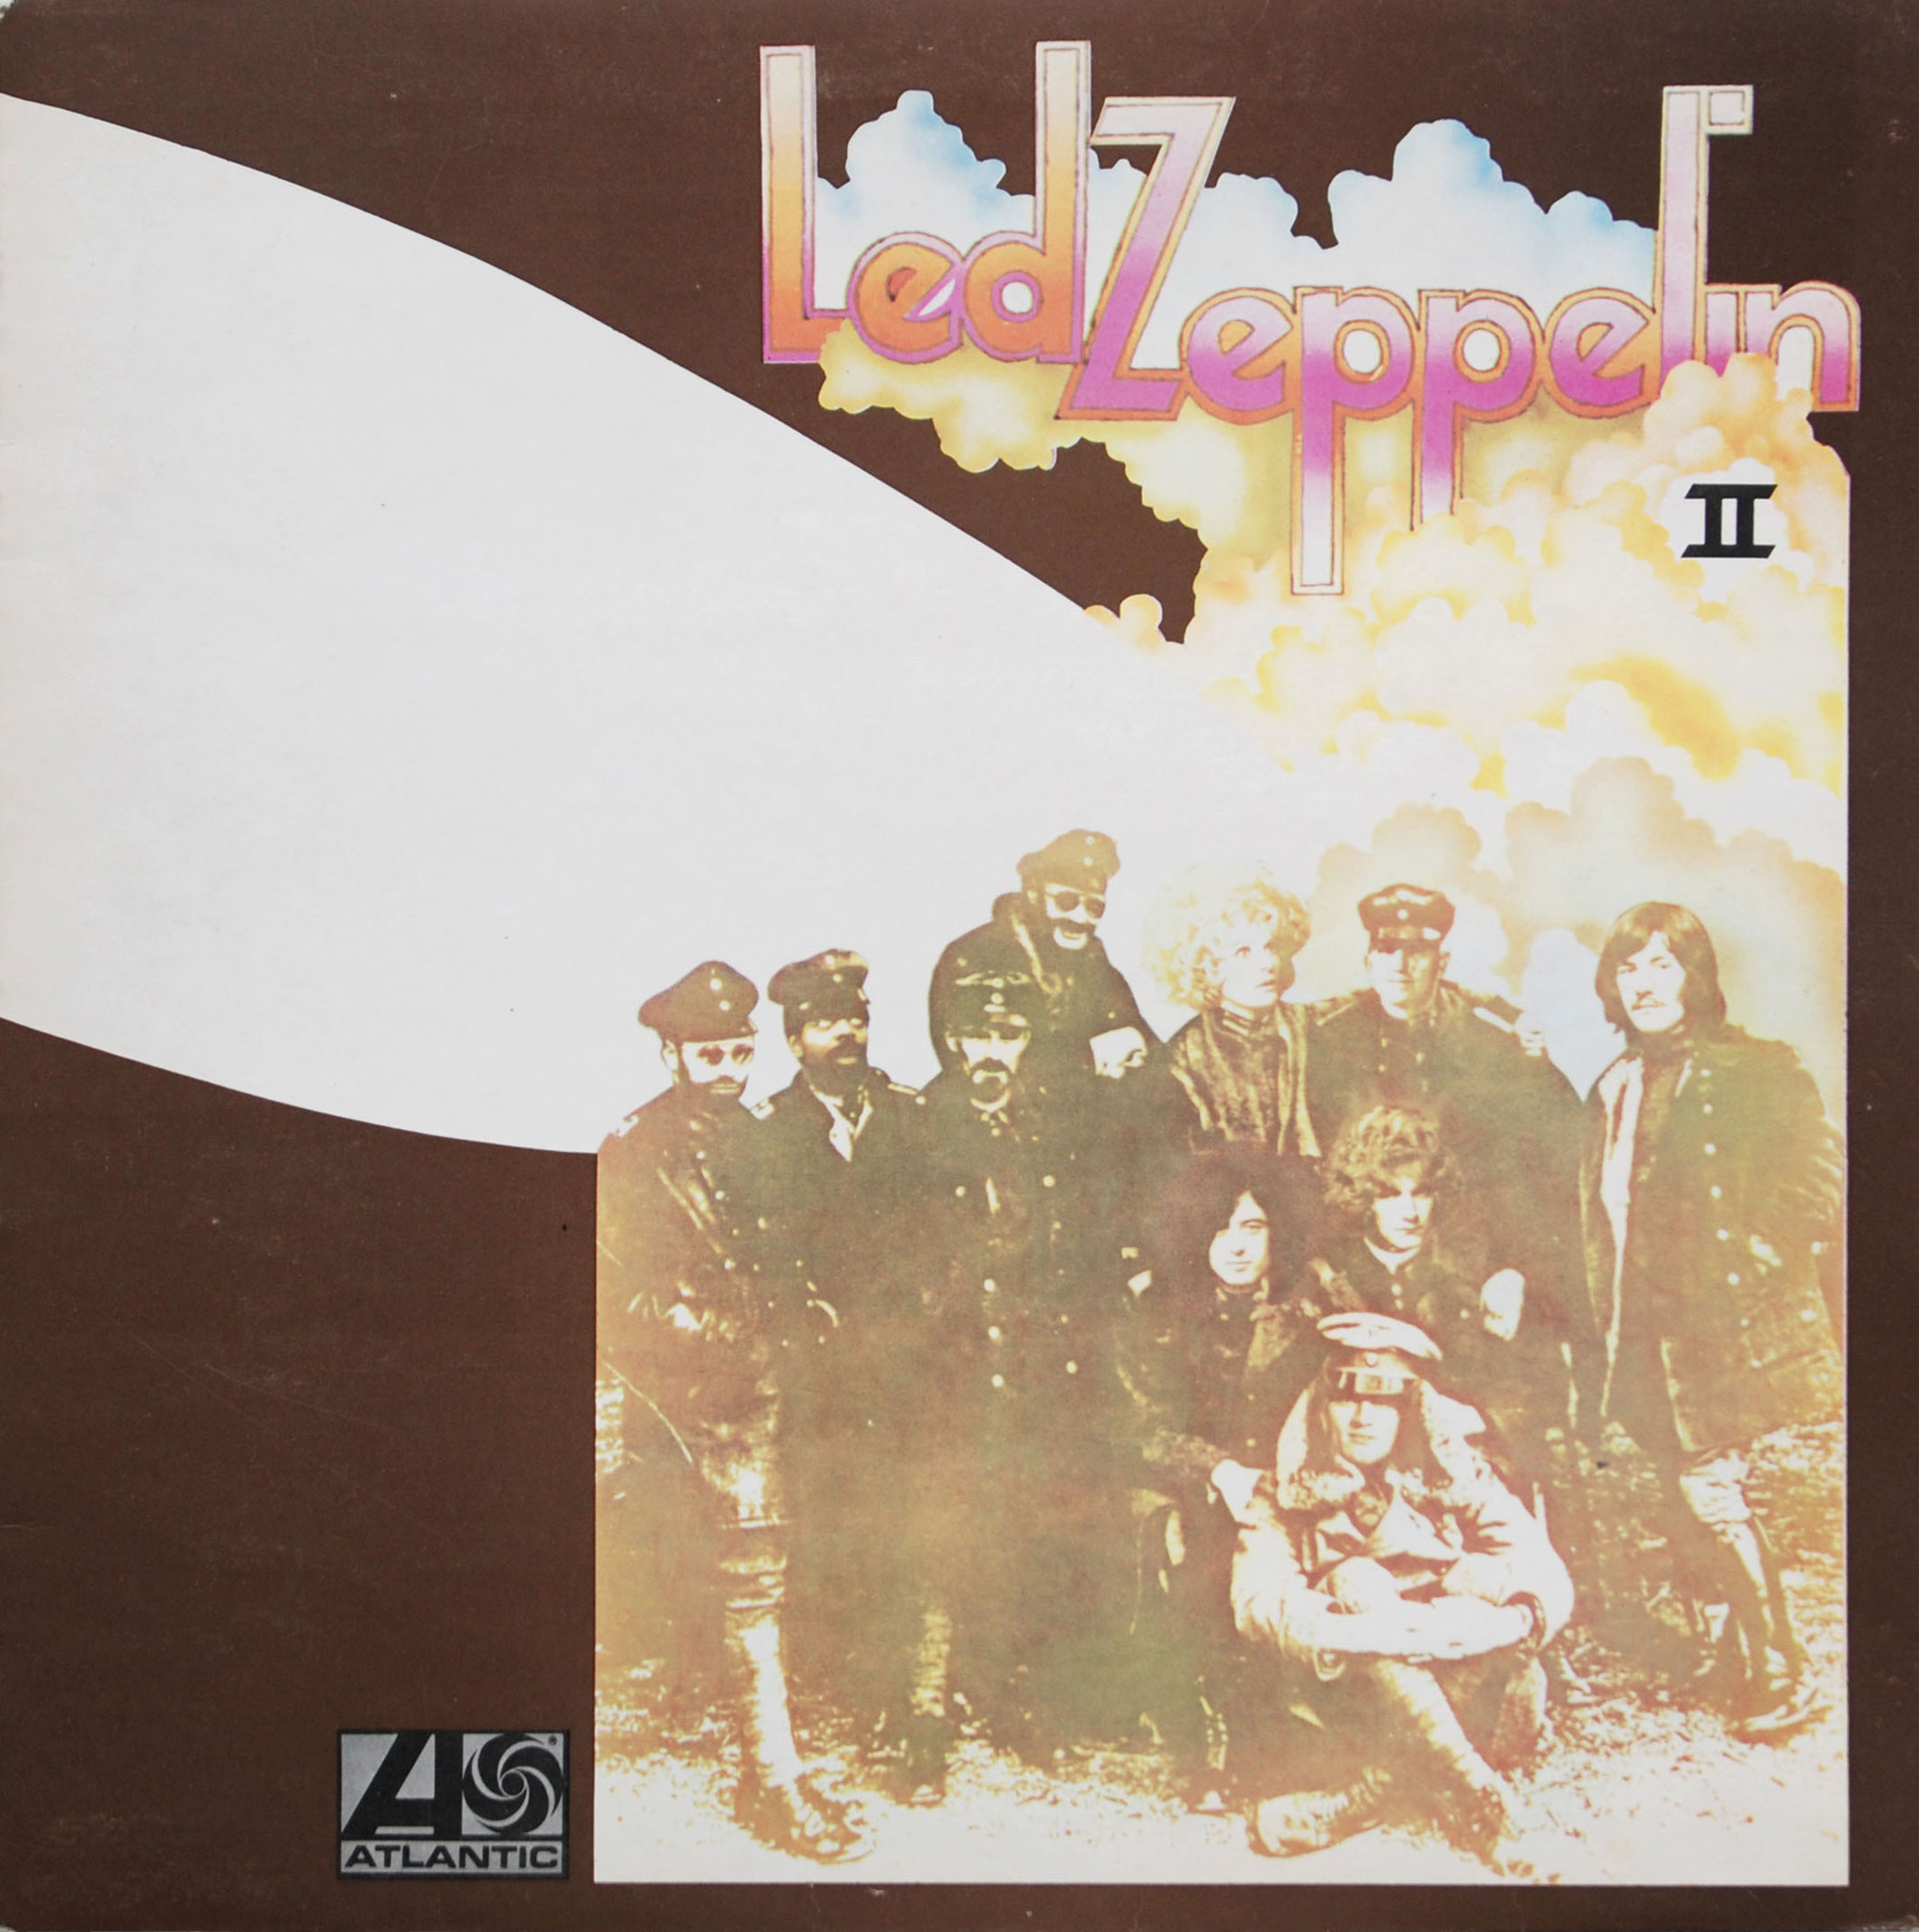 0001 led-zeppelin-ii-front